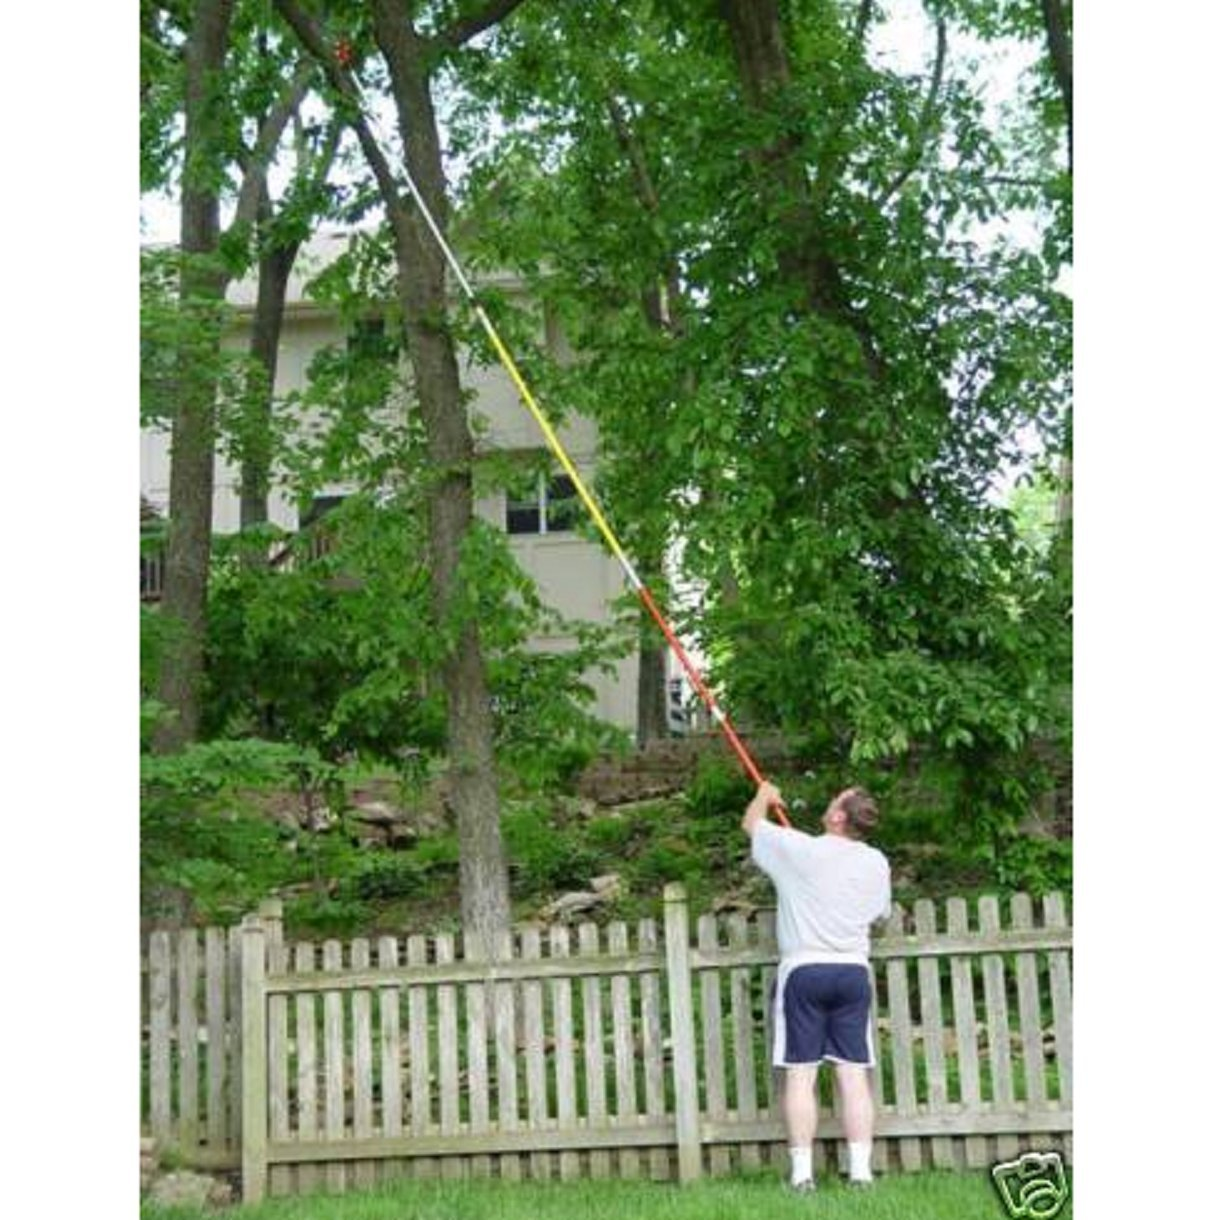 USA Premium Store 19 FOOT POLE SAW Tree Pole Pruner Tree Saw by USA Premium Store